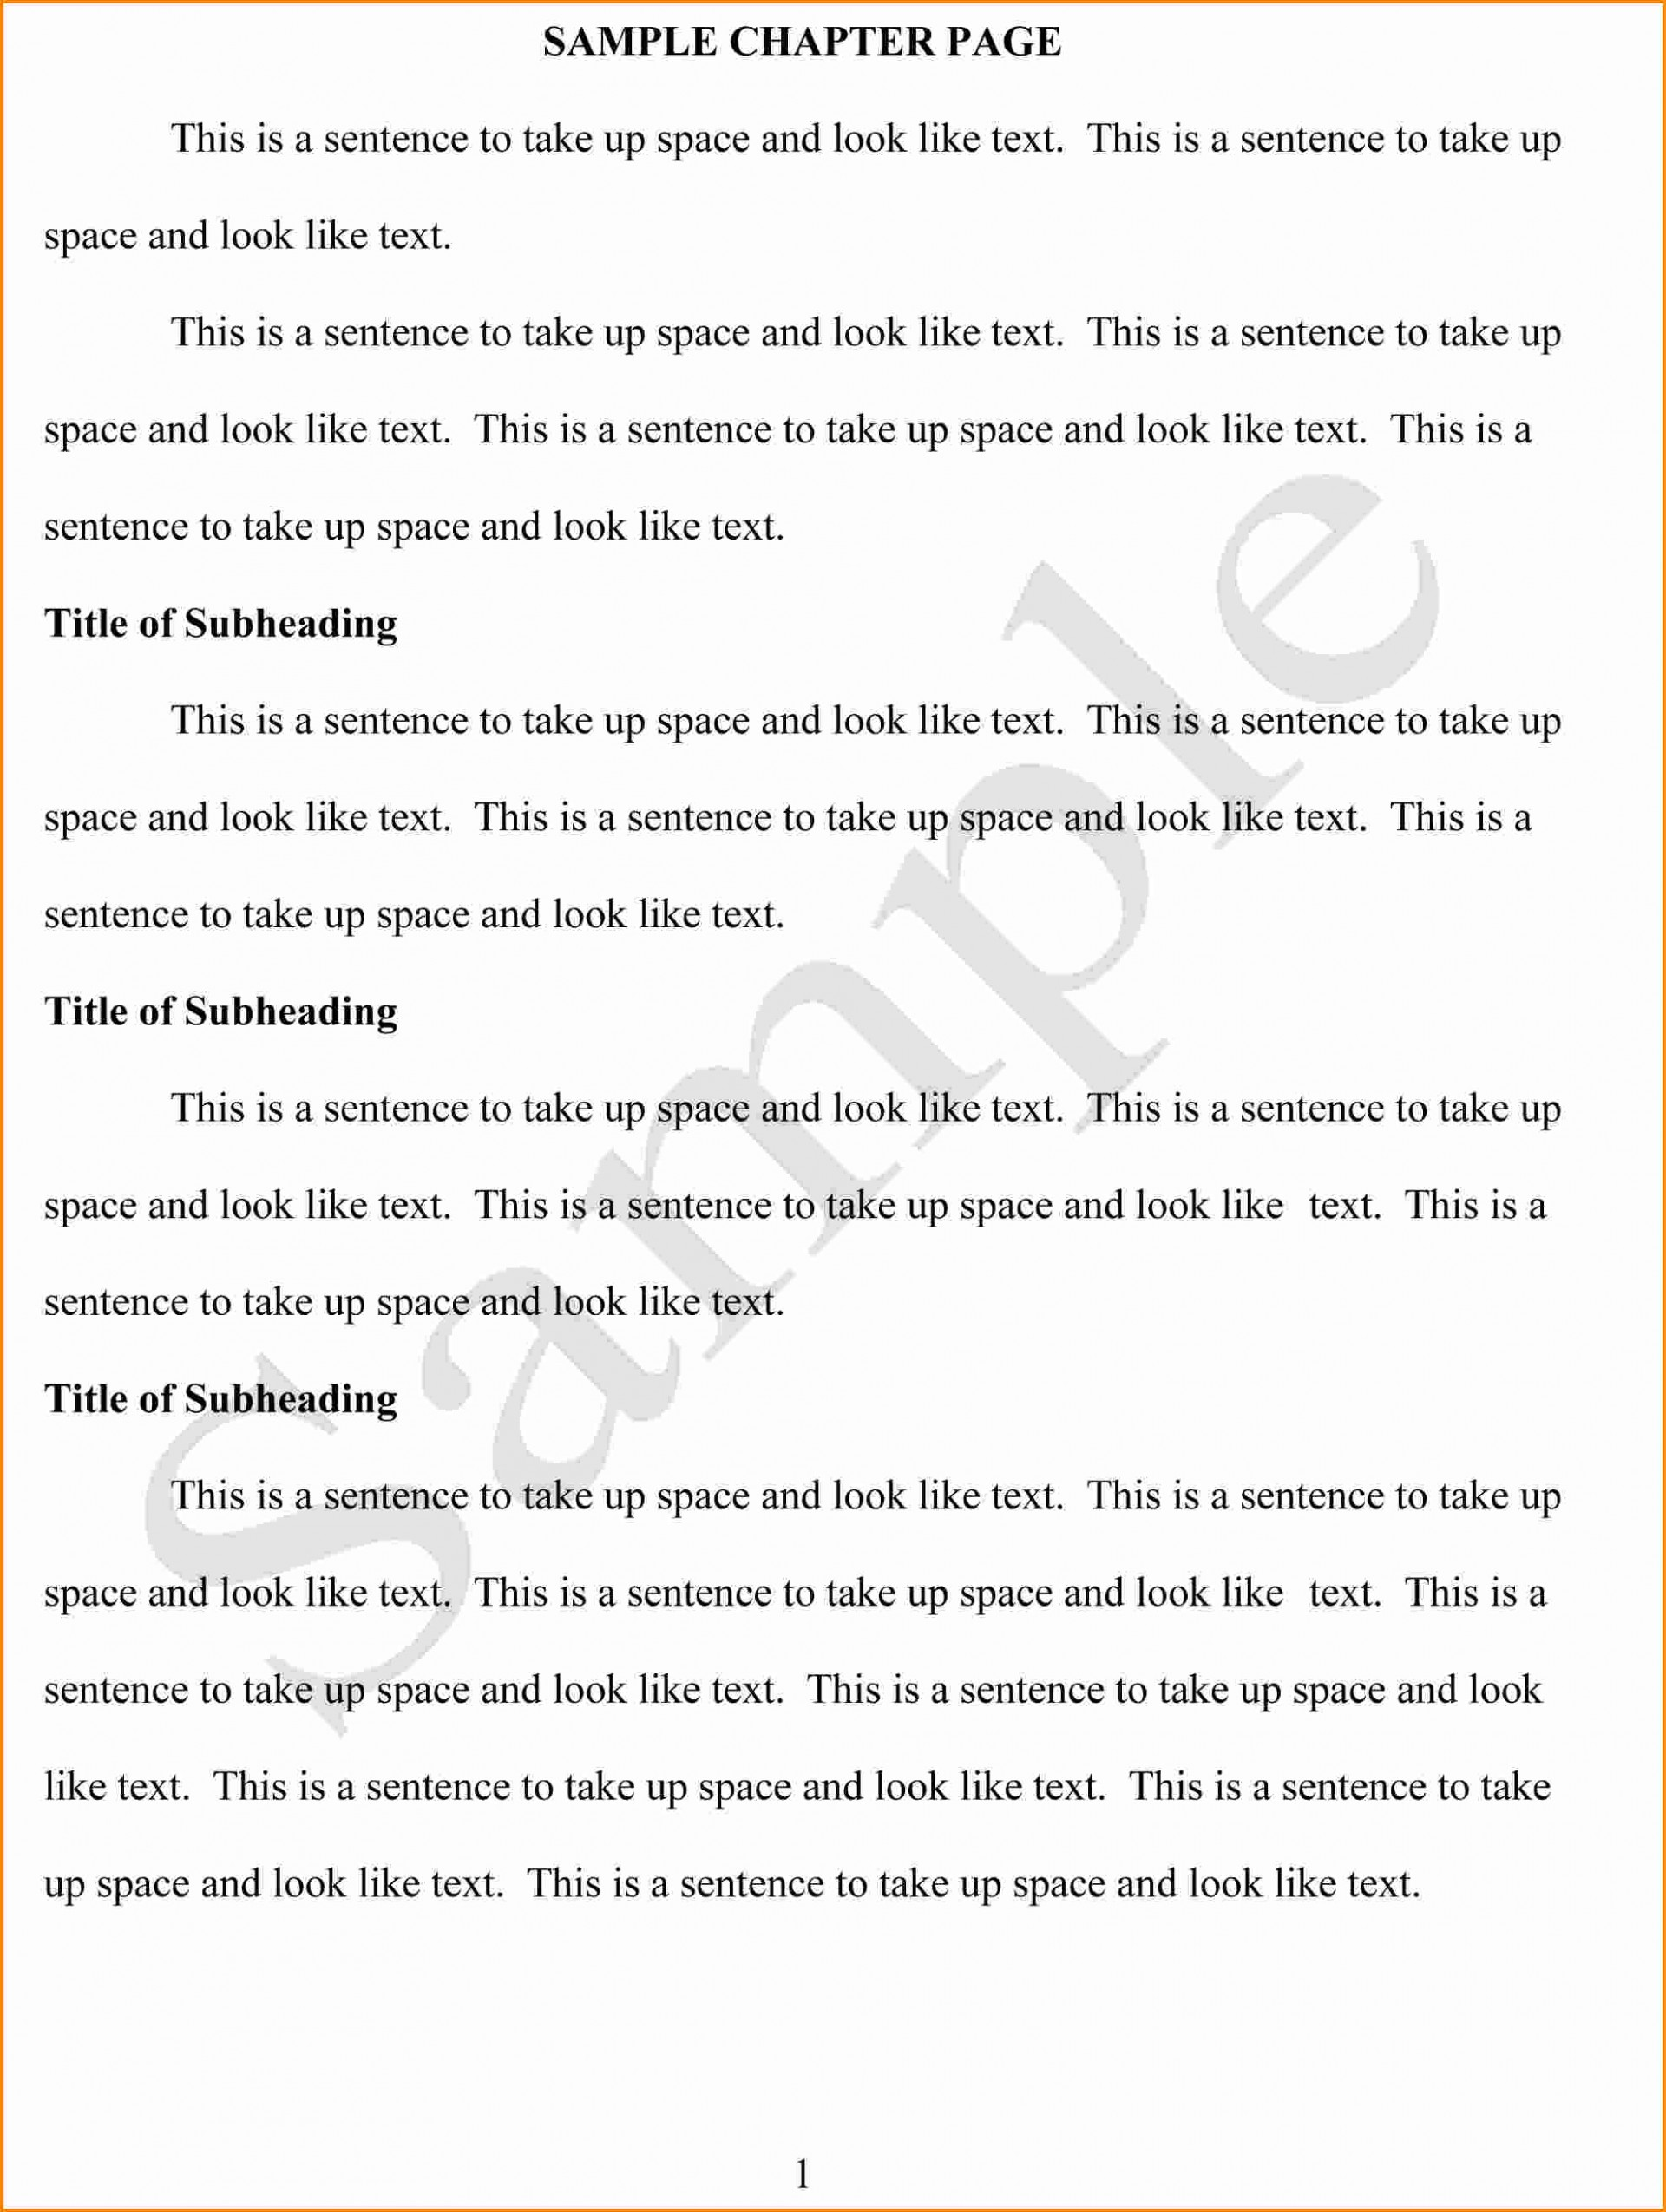 001 Thesis Statement Examples For Essays Essay Example Psychology Impressive Analysis Response Papers About Yourself 1920